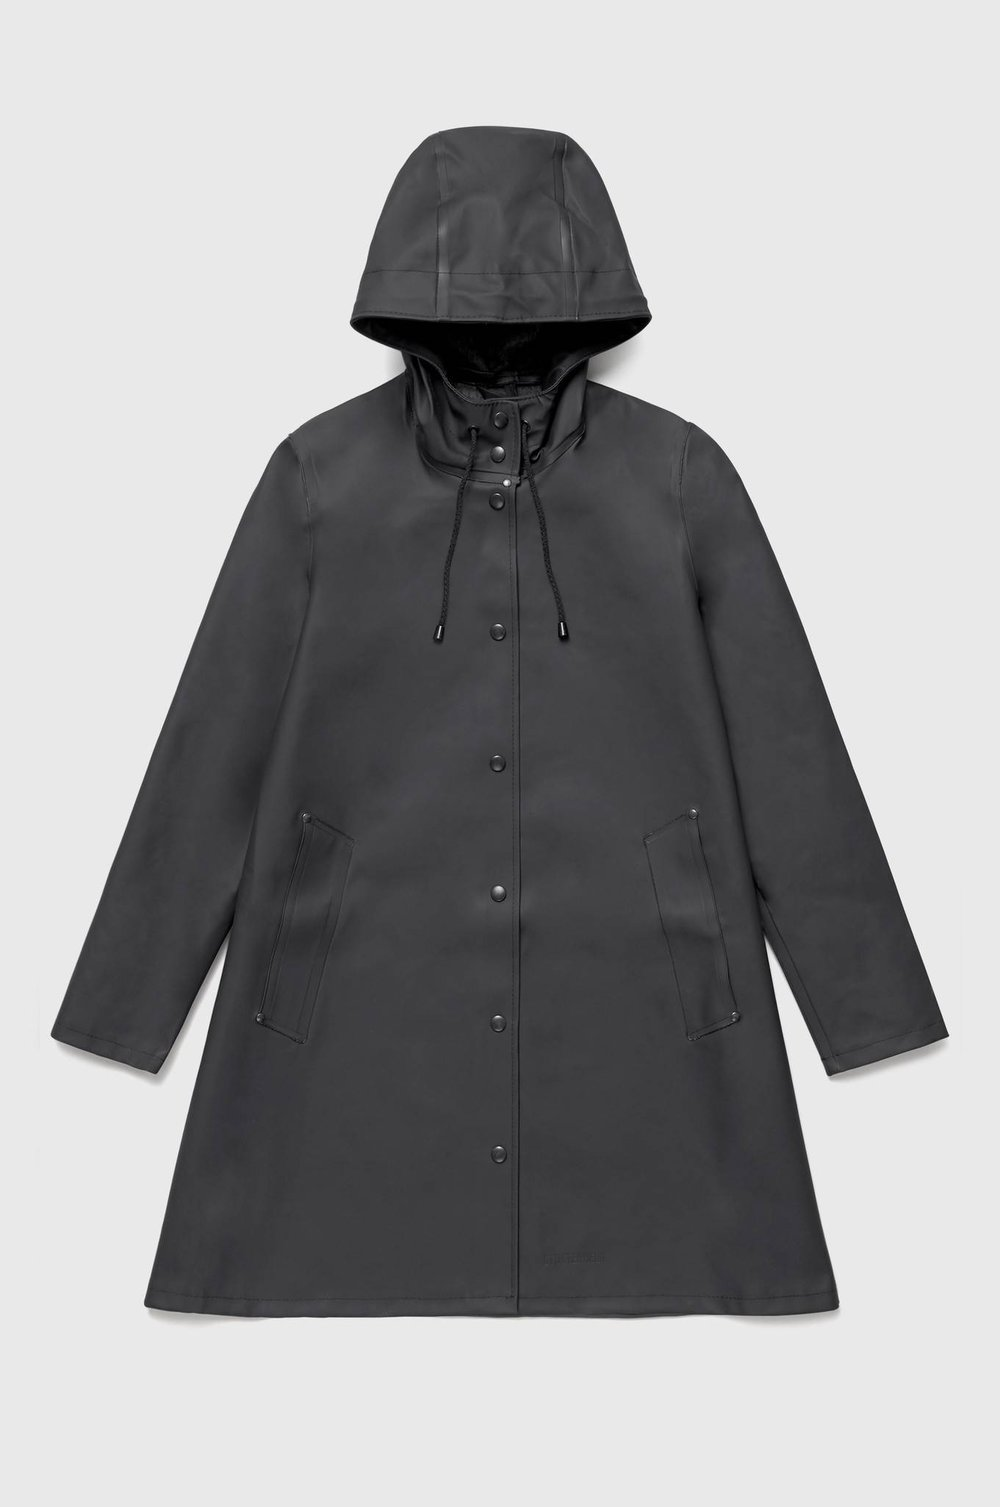 the silhouette polishes up Stutterheim's Mosebacke style